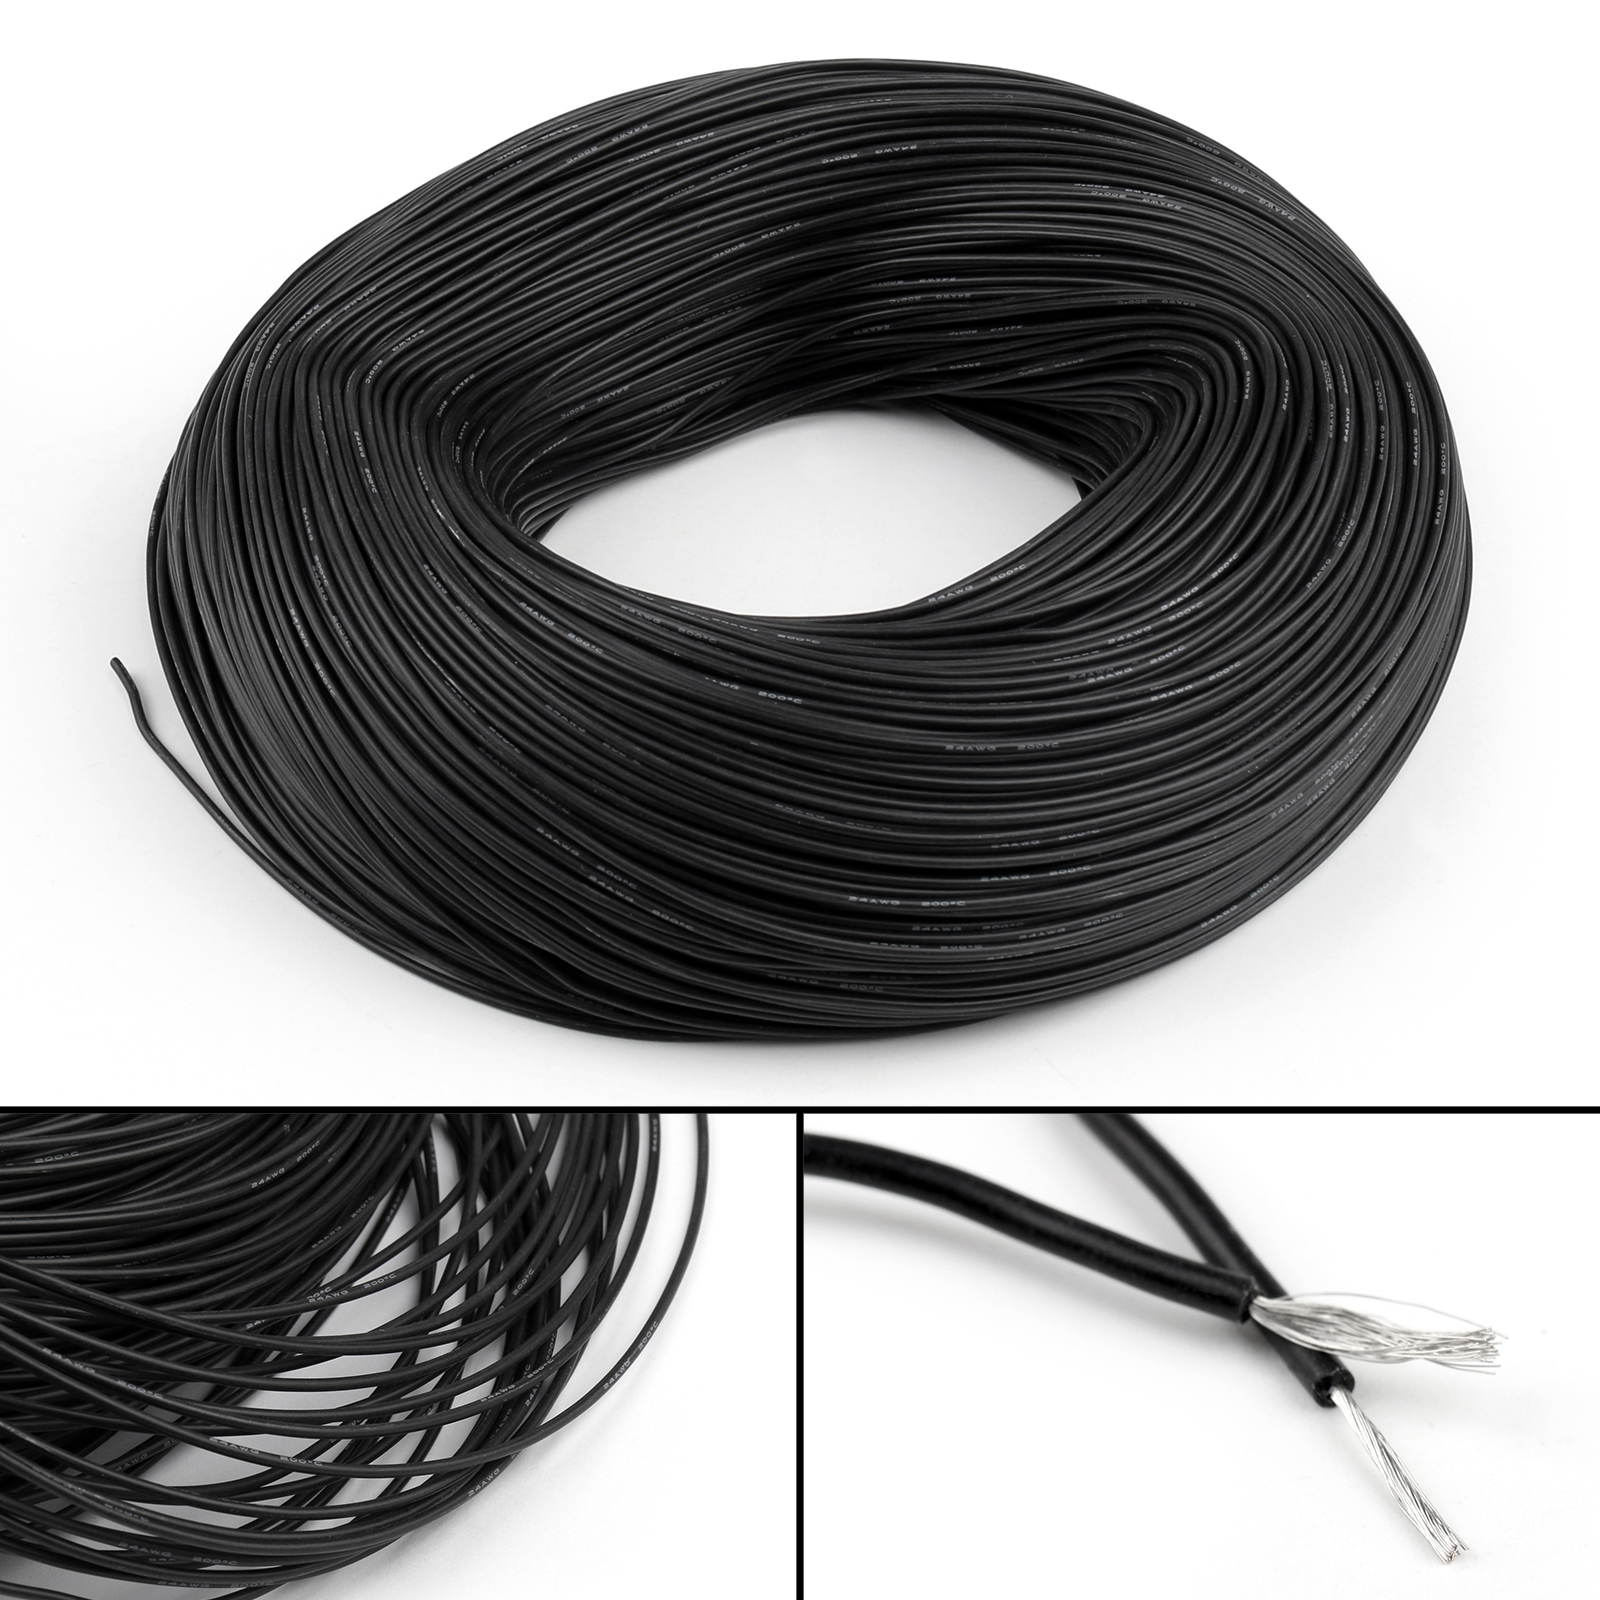 5M Flexible Stranded Silicone Rubber Wire Cable 24AWG Gauge OD 1.5mm ...